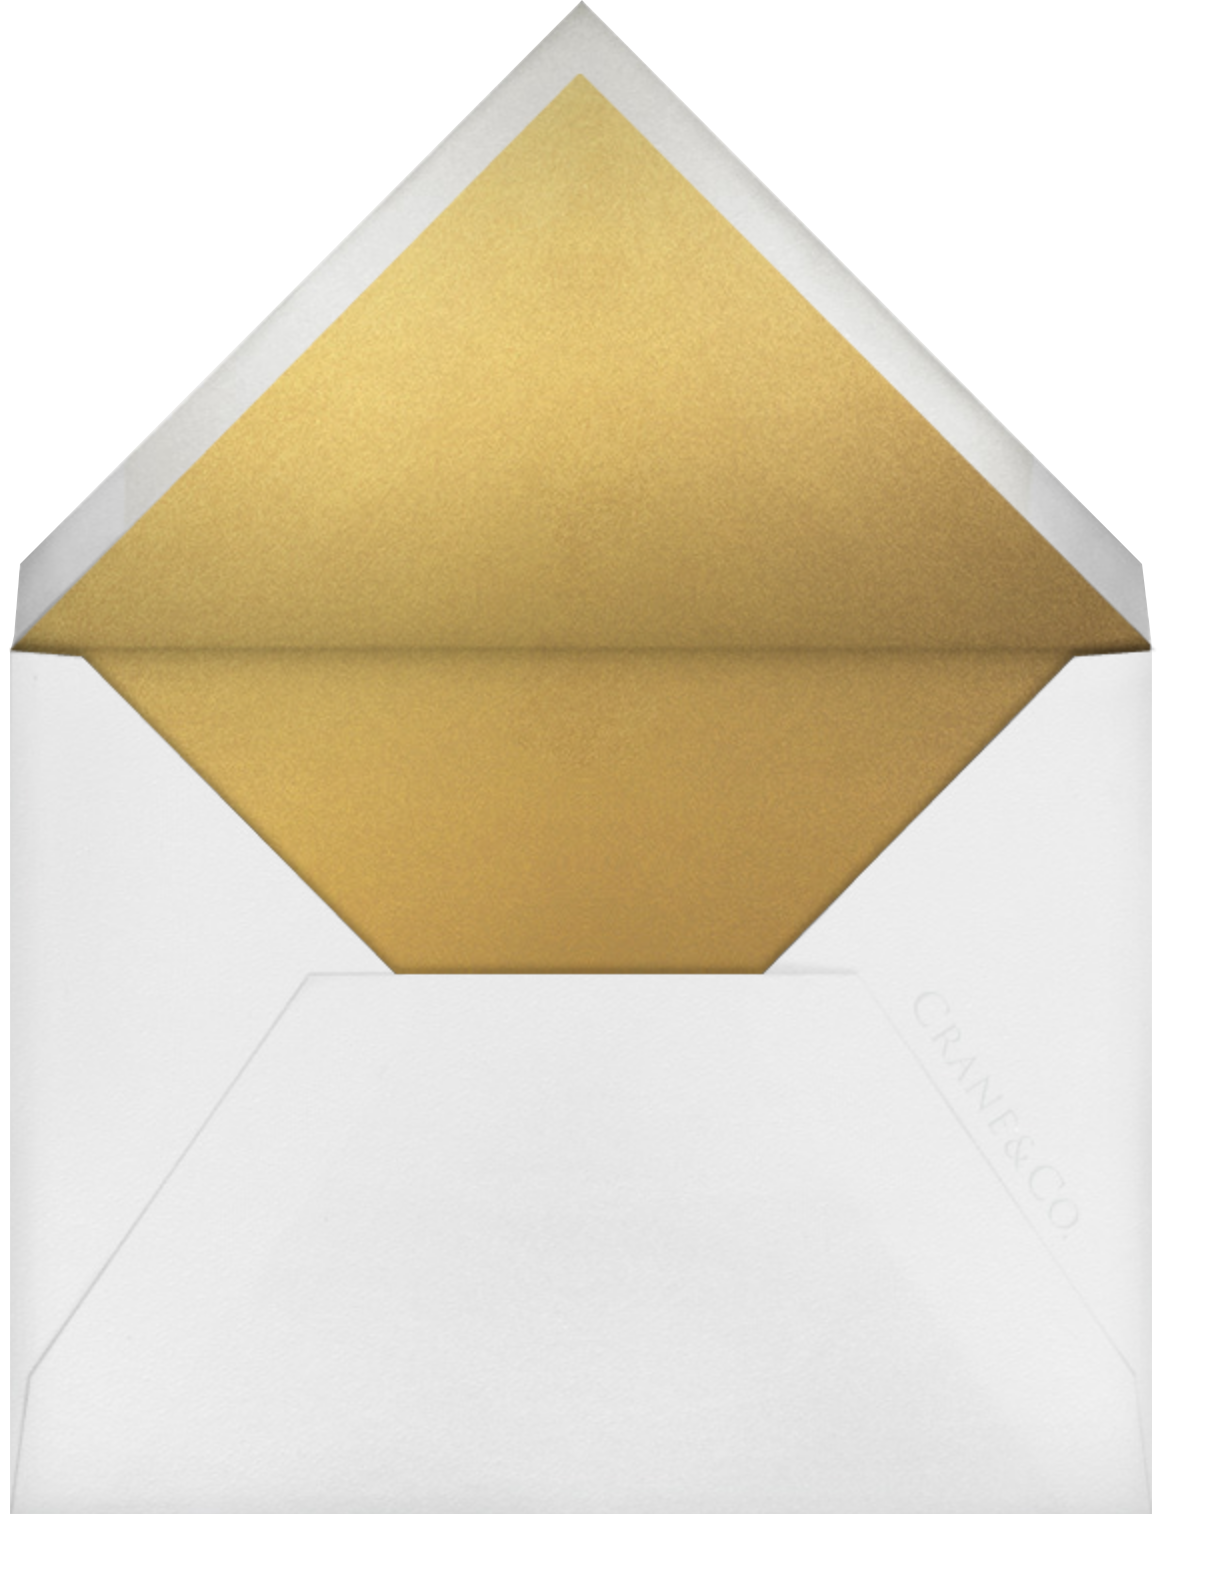 Roman (Stationery) - Gold - Vera Wang - Personalized stationery - envelope back